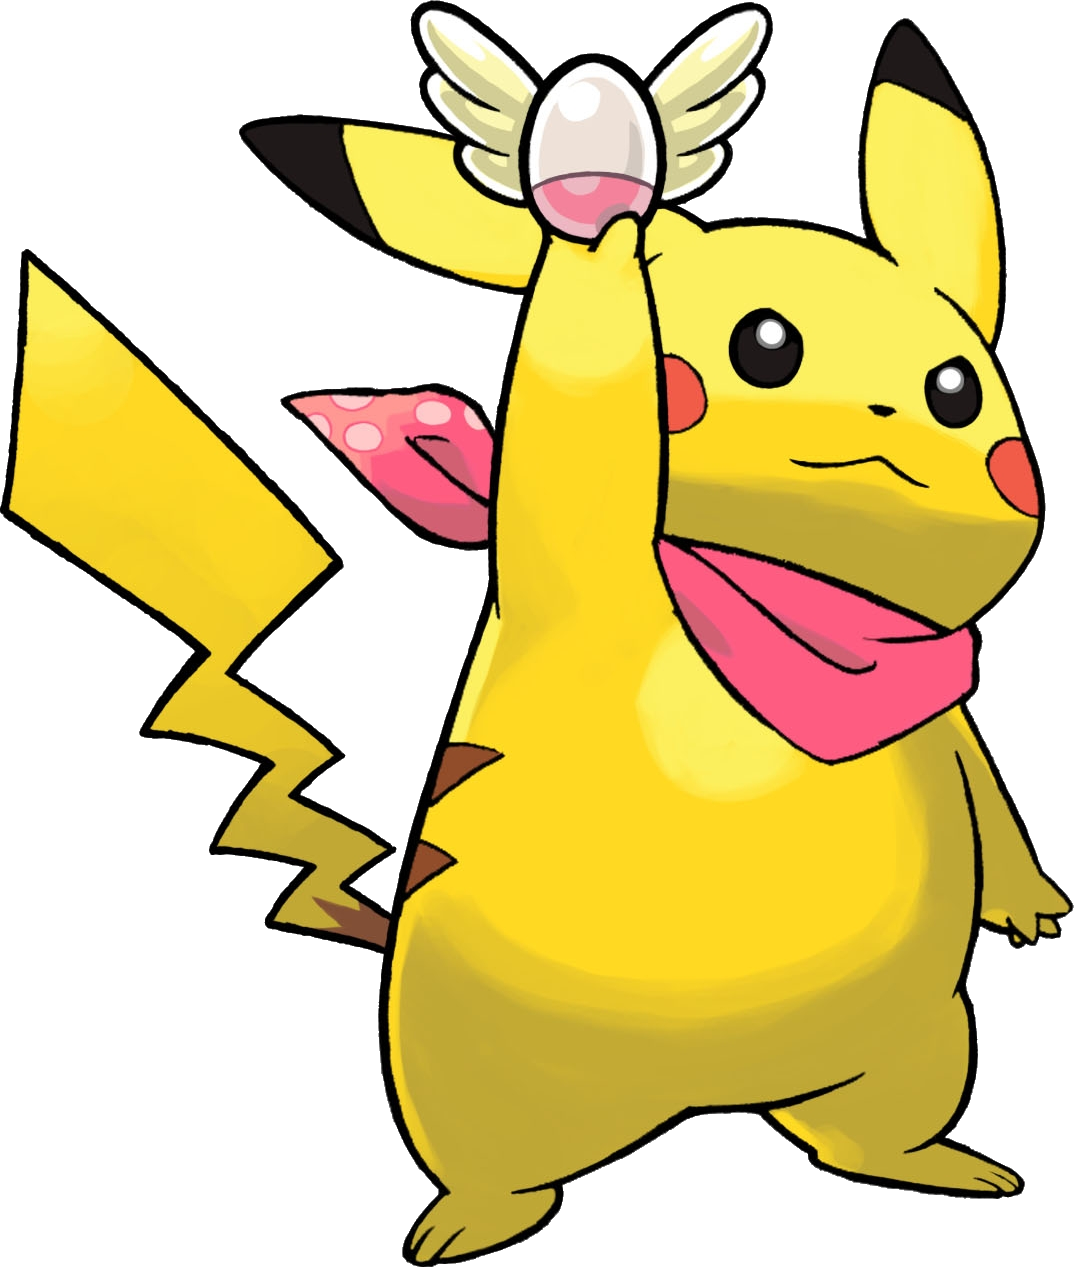 Pikachu clipart heart. Image pokemon mystery dungeon